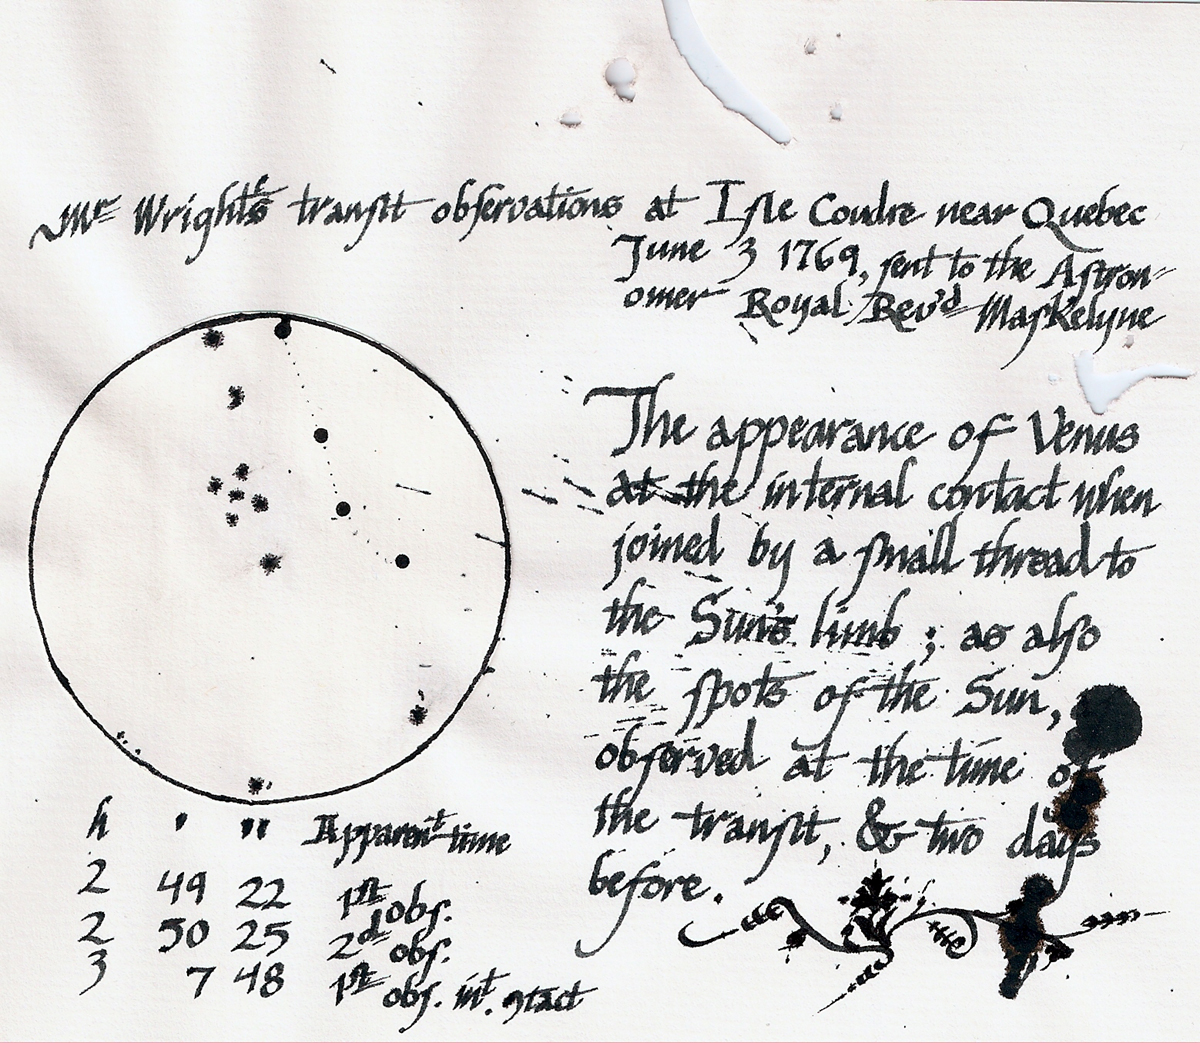 Thomas Wright's 1769 transit observations at Île aux Coudres, Lower Canada